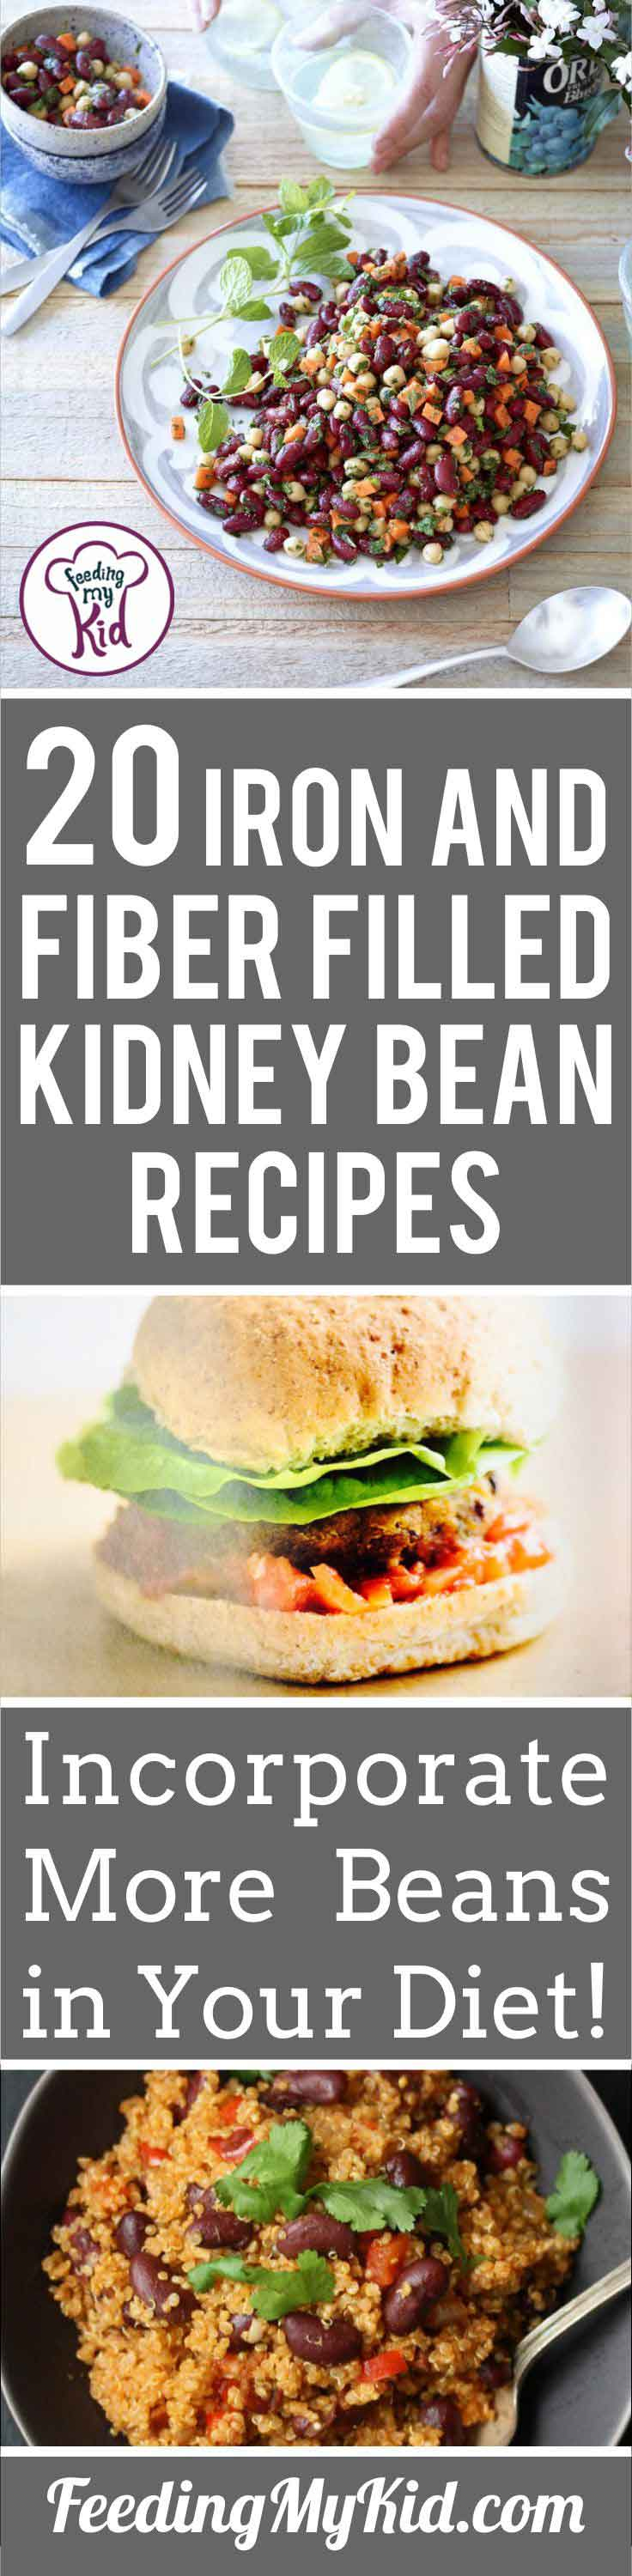 Trying to get more beans in your diet? These kidney bean recipes are perfect for that! Kidney beans are full of protein, fiber, and iron. A great add-in!